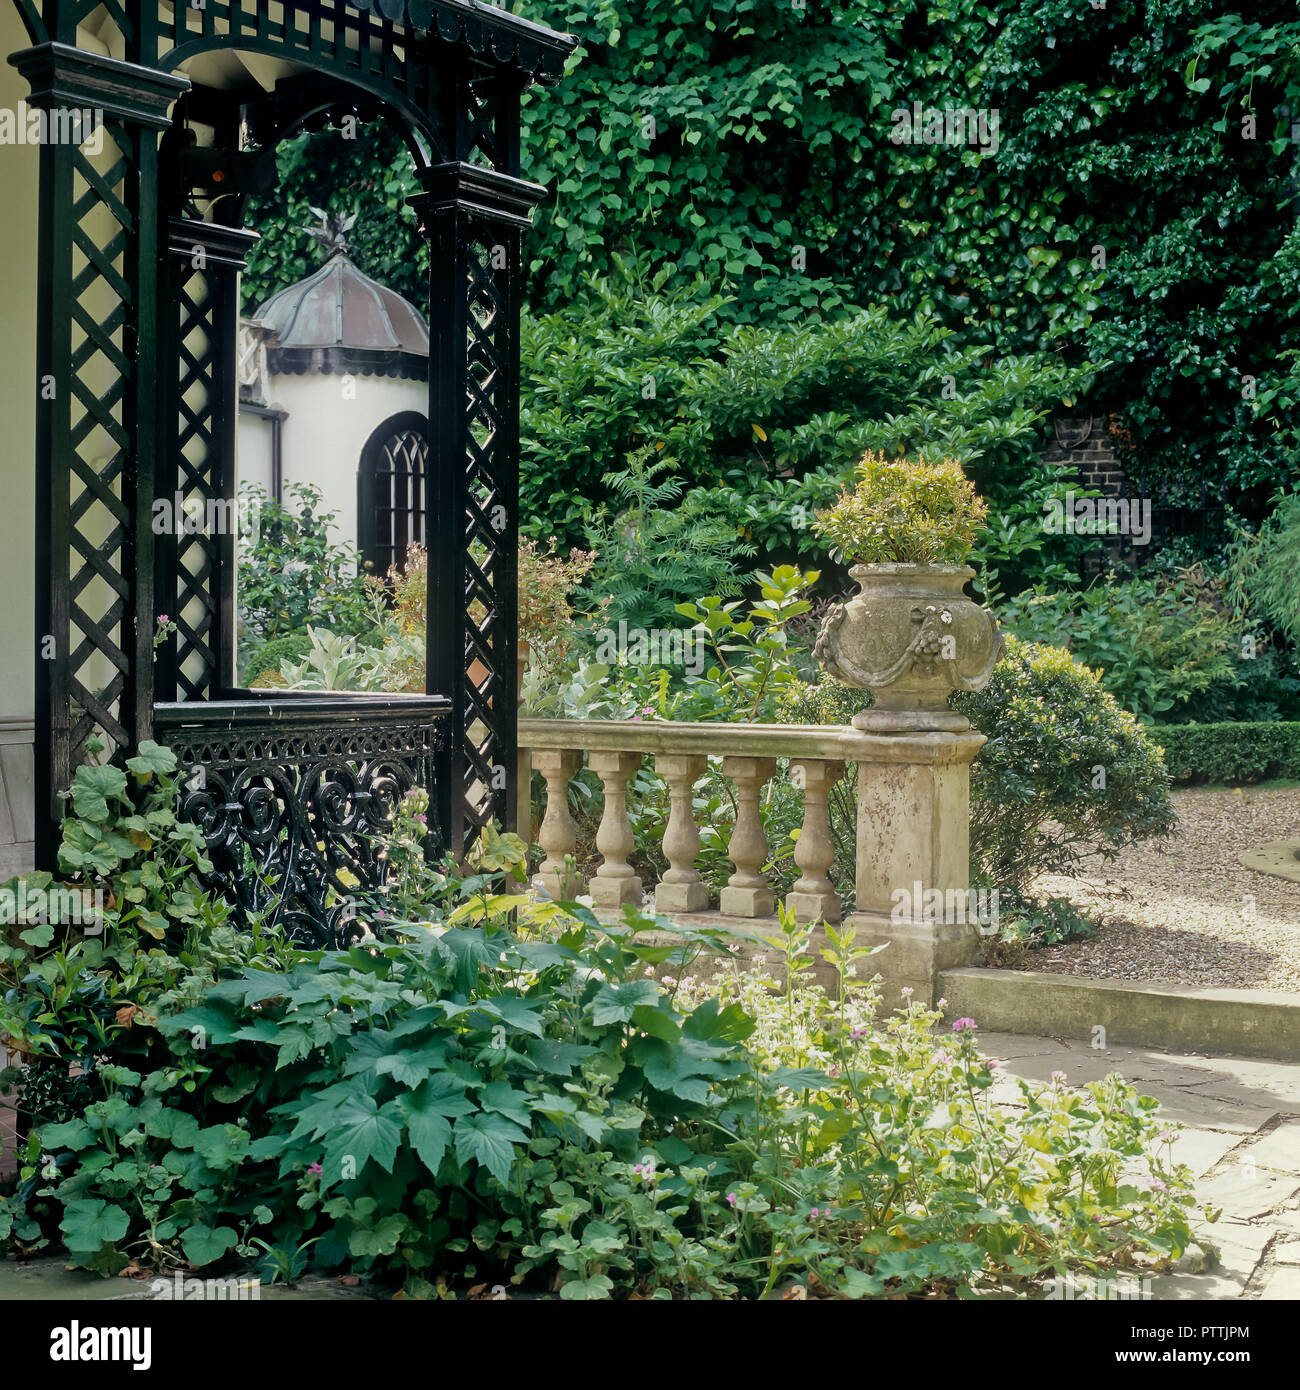 Victorian veranda and balustrade in kensington garden - Stock Image